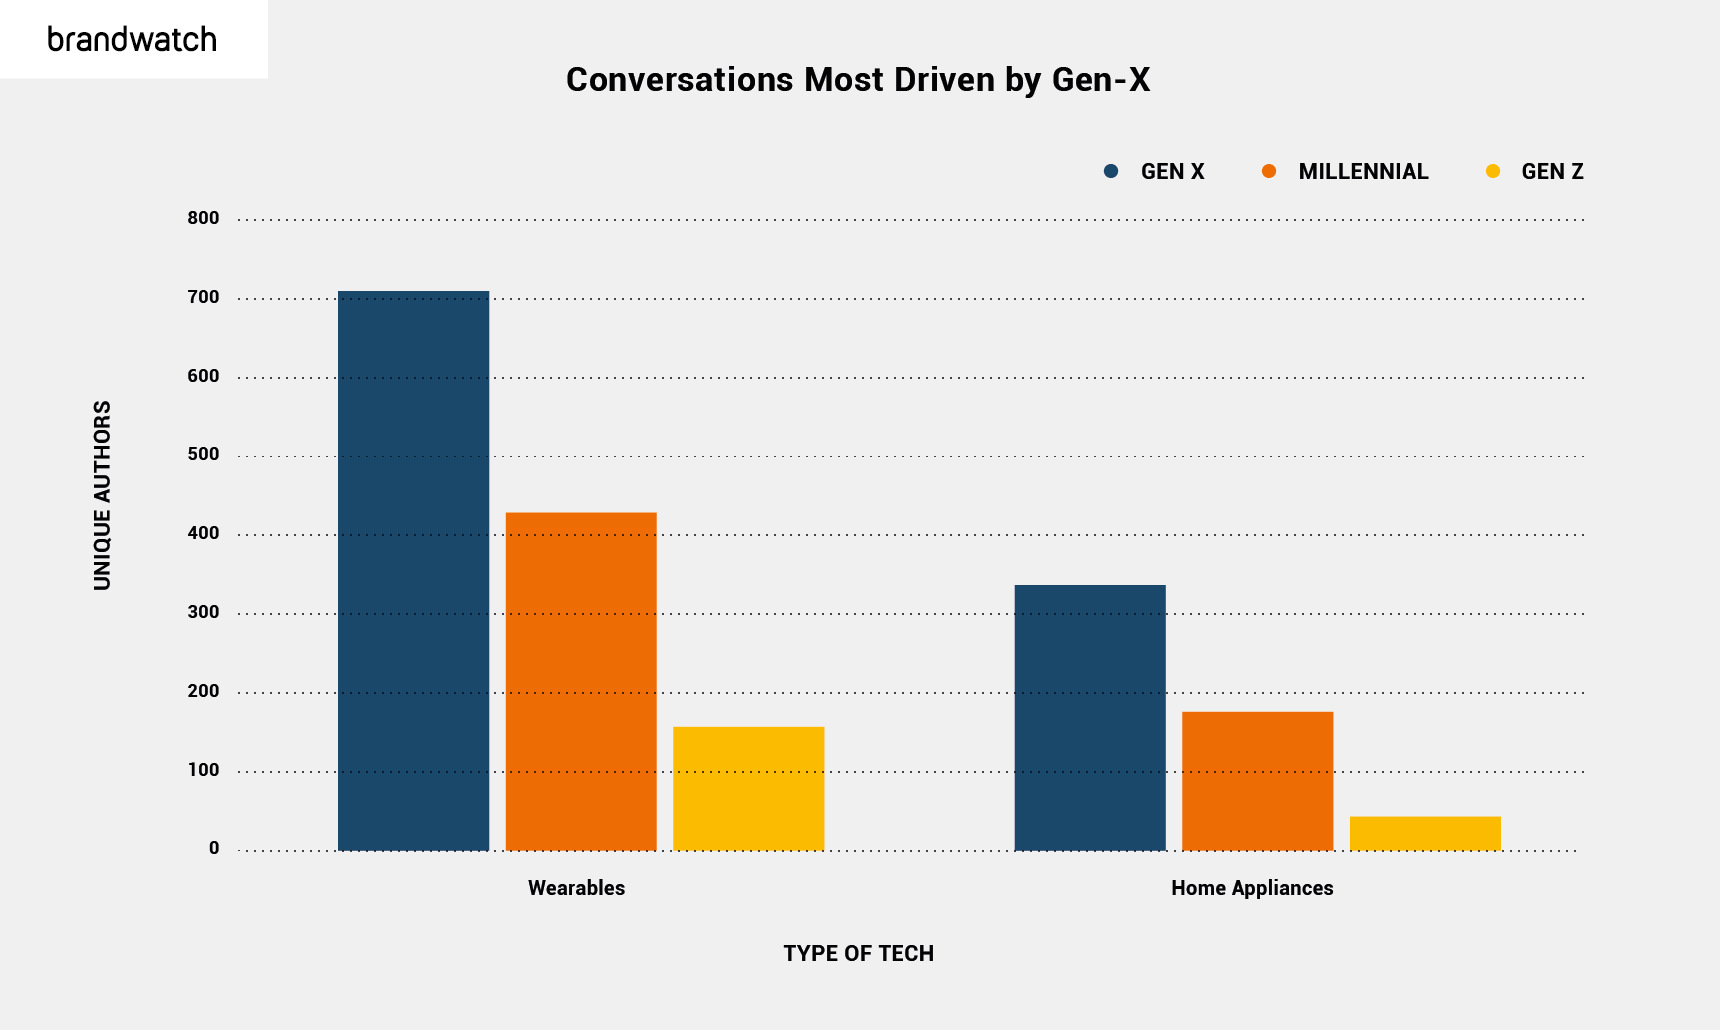 Bar chart showing conversations around wearables and home appliances, split out by Gen X, Millennial, and Gen Z